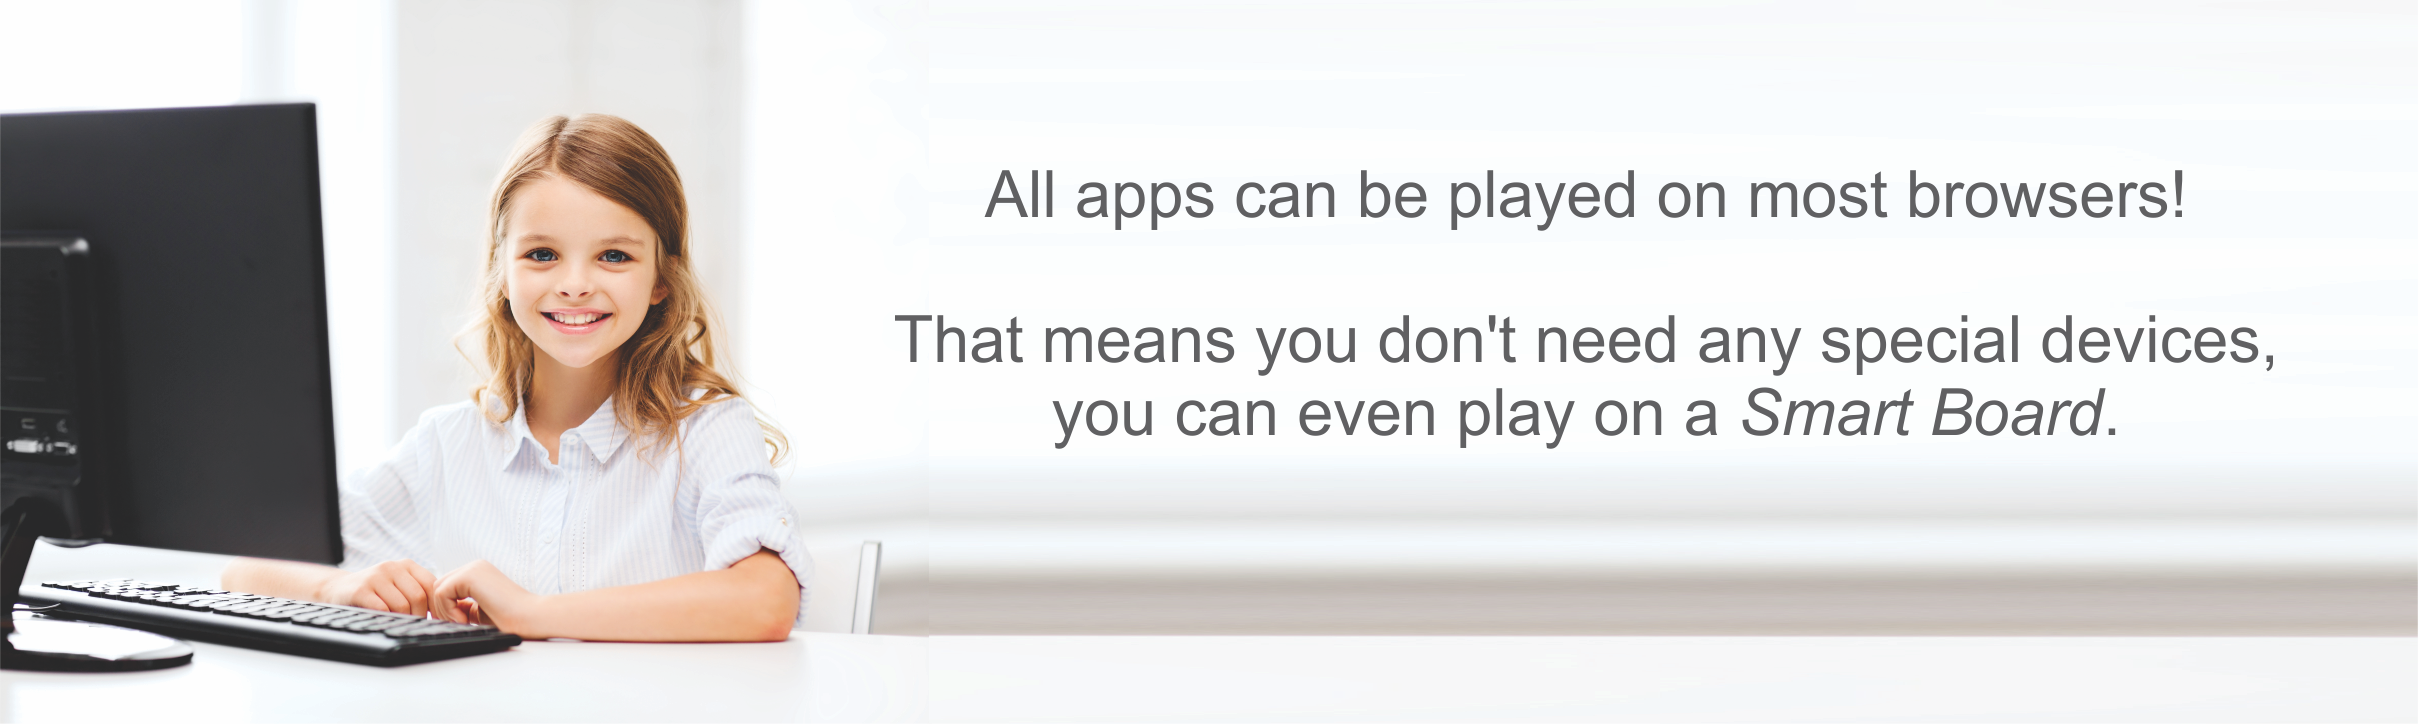 All apps can be played on most browsers.